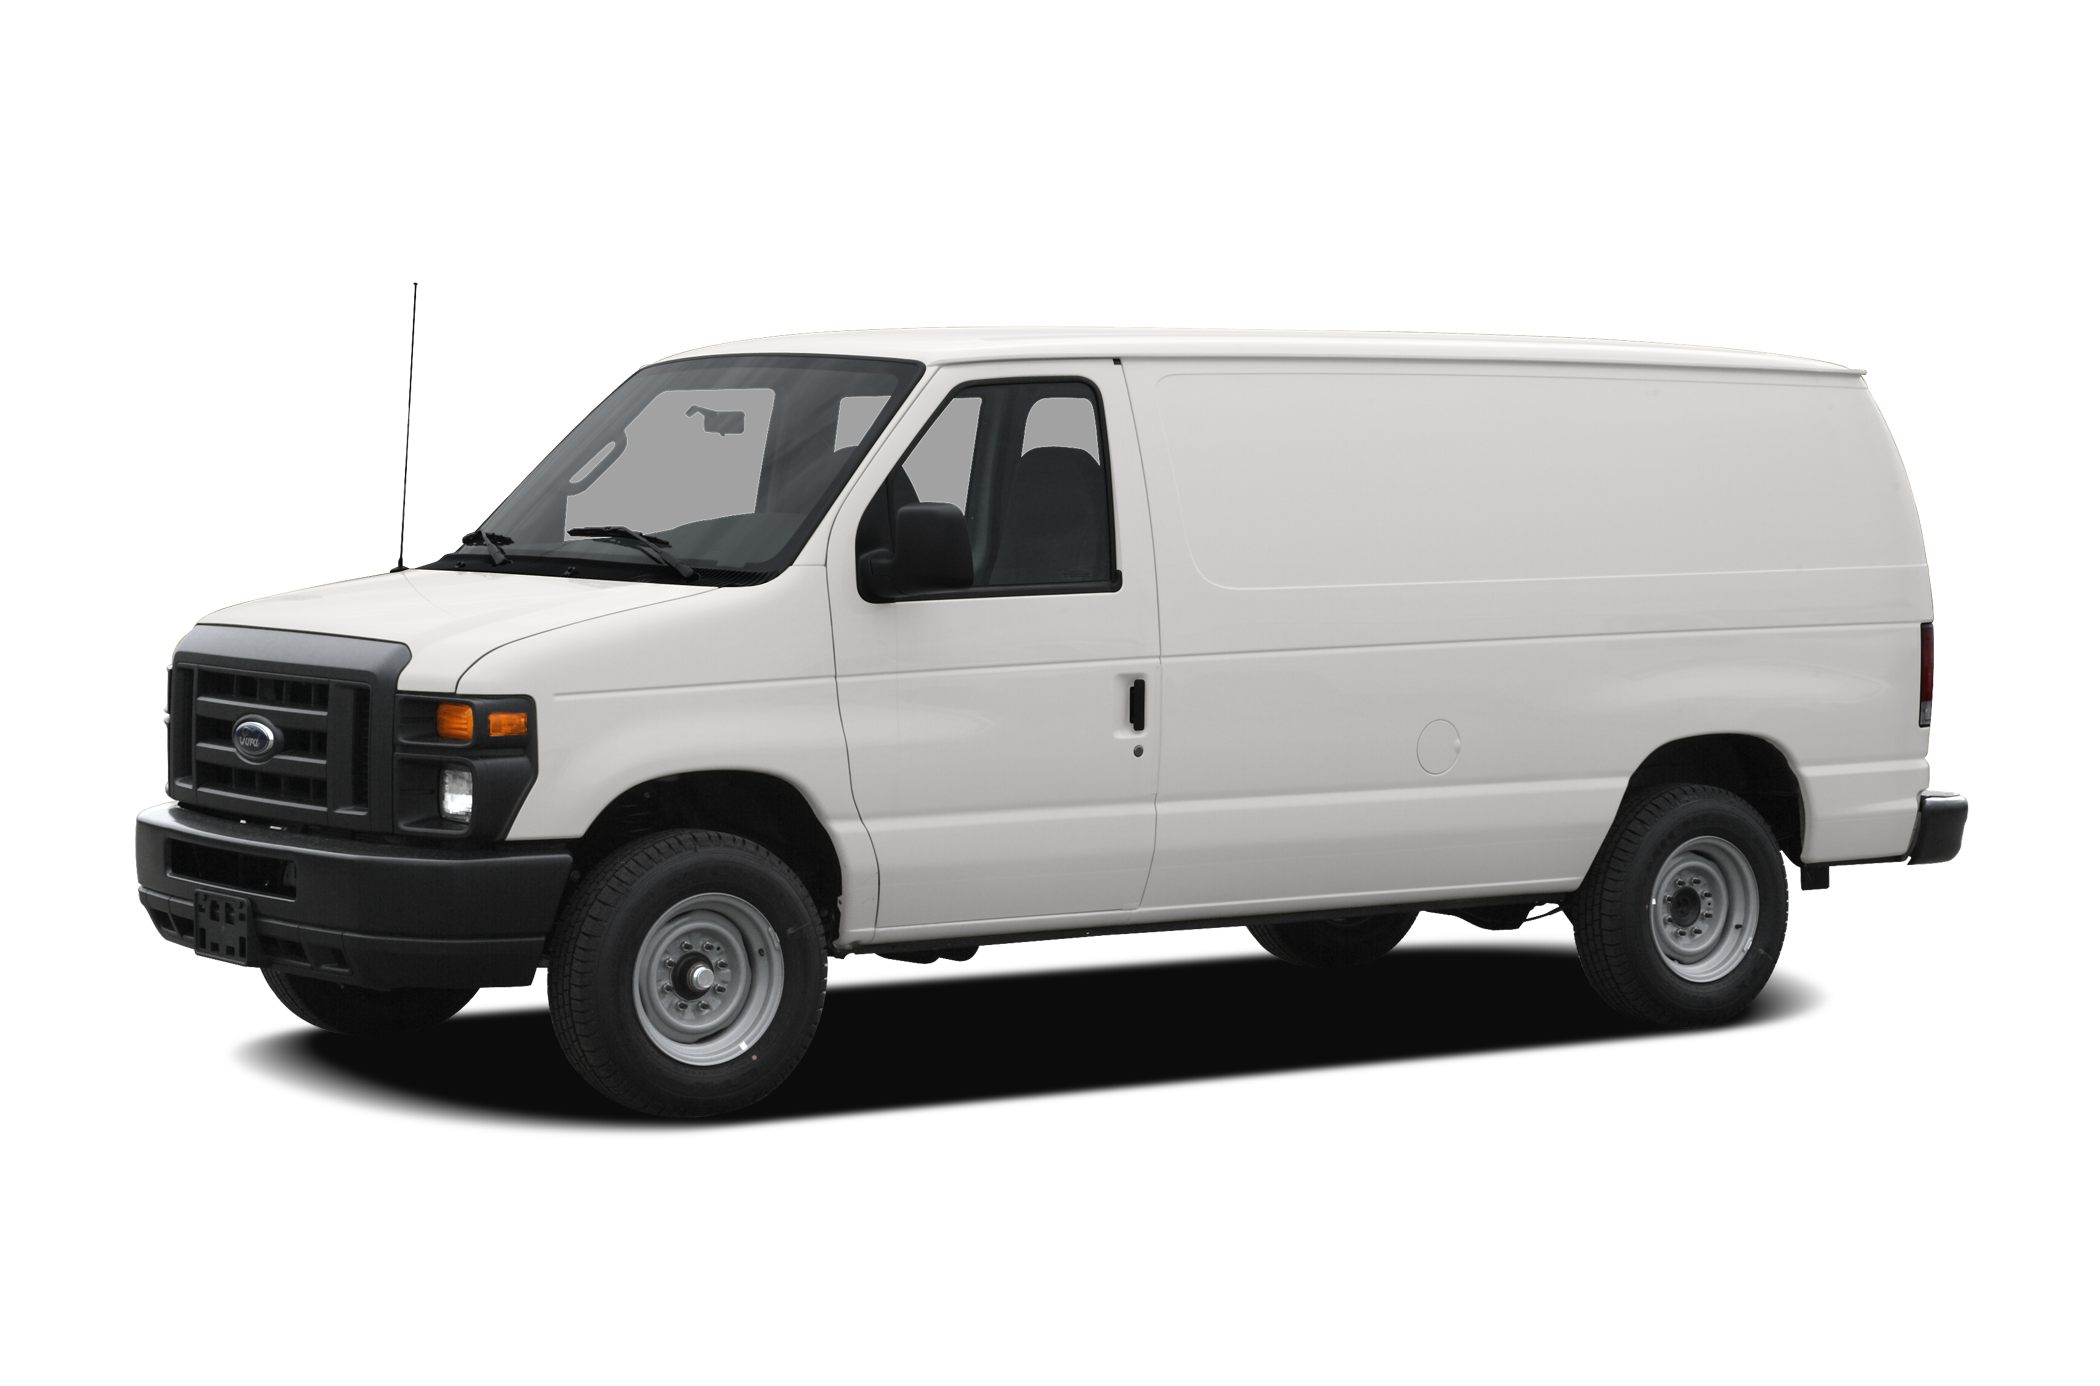 2008 ford e 250 commercial cargo van specs and prices 2008 ford e 250 commercial cargo van specs and prices